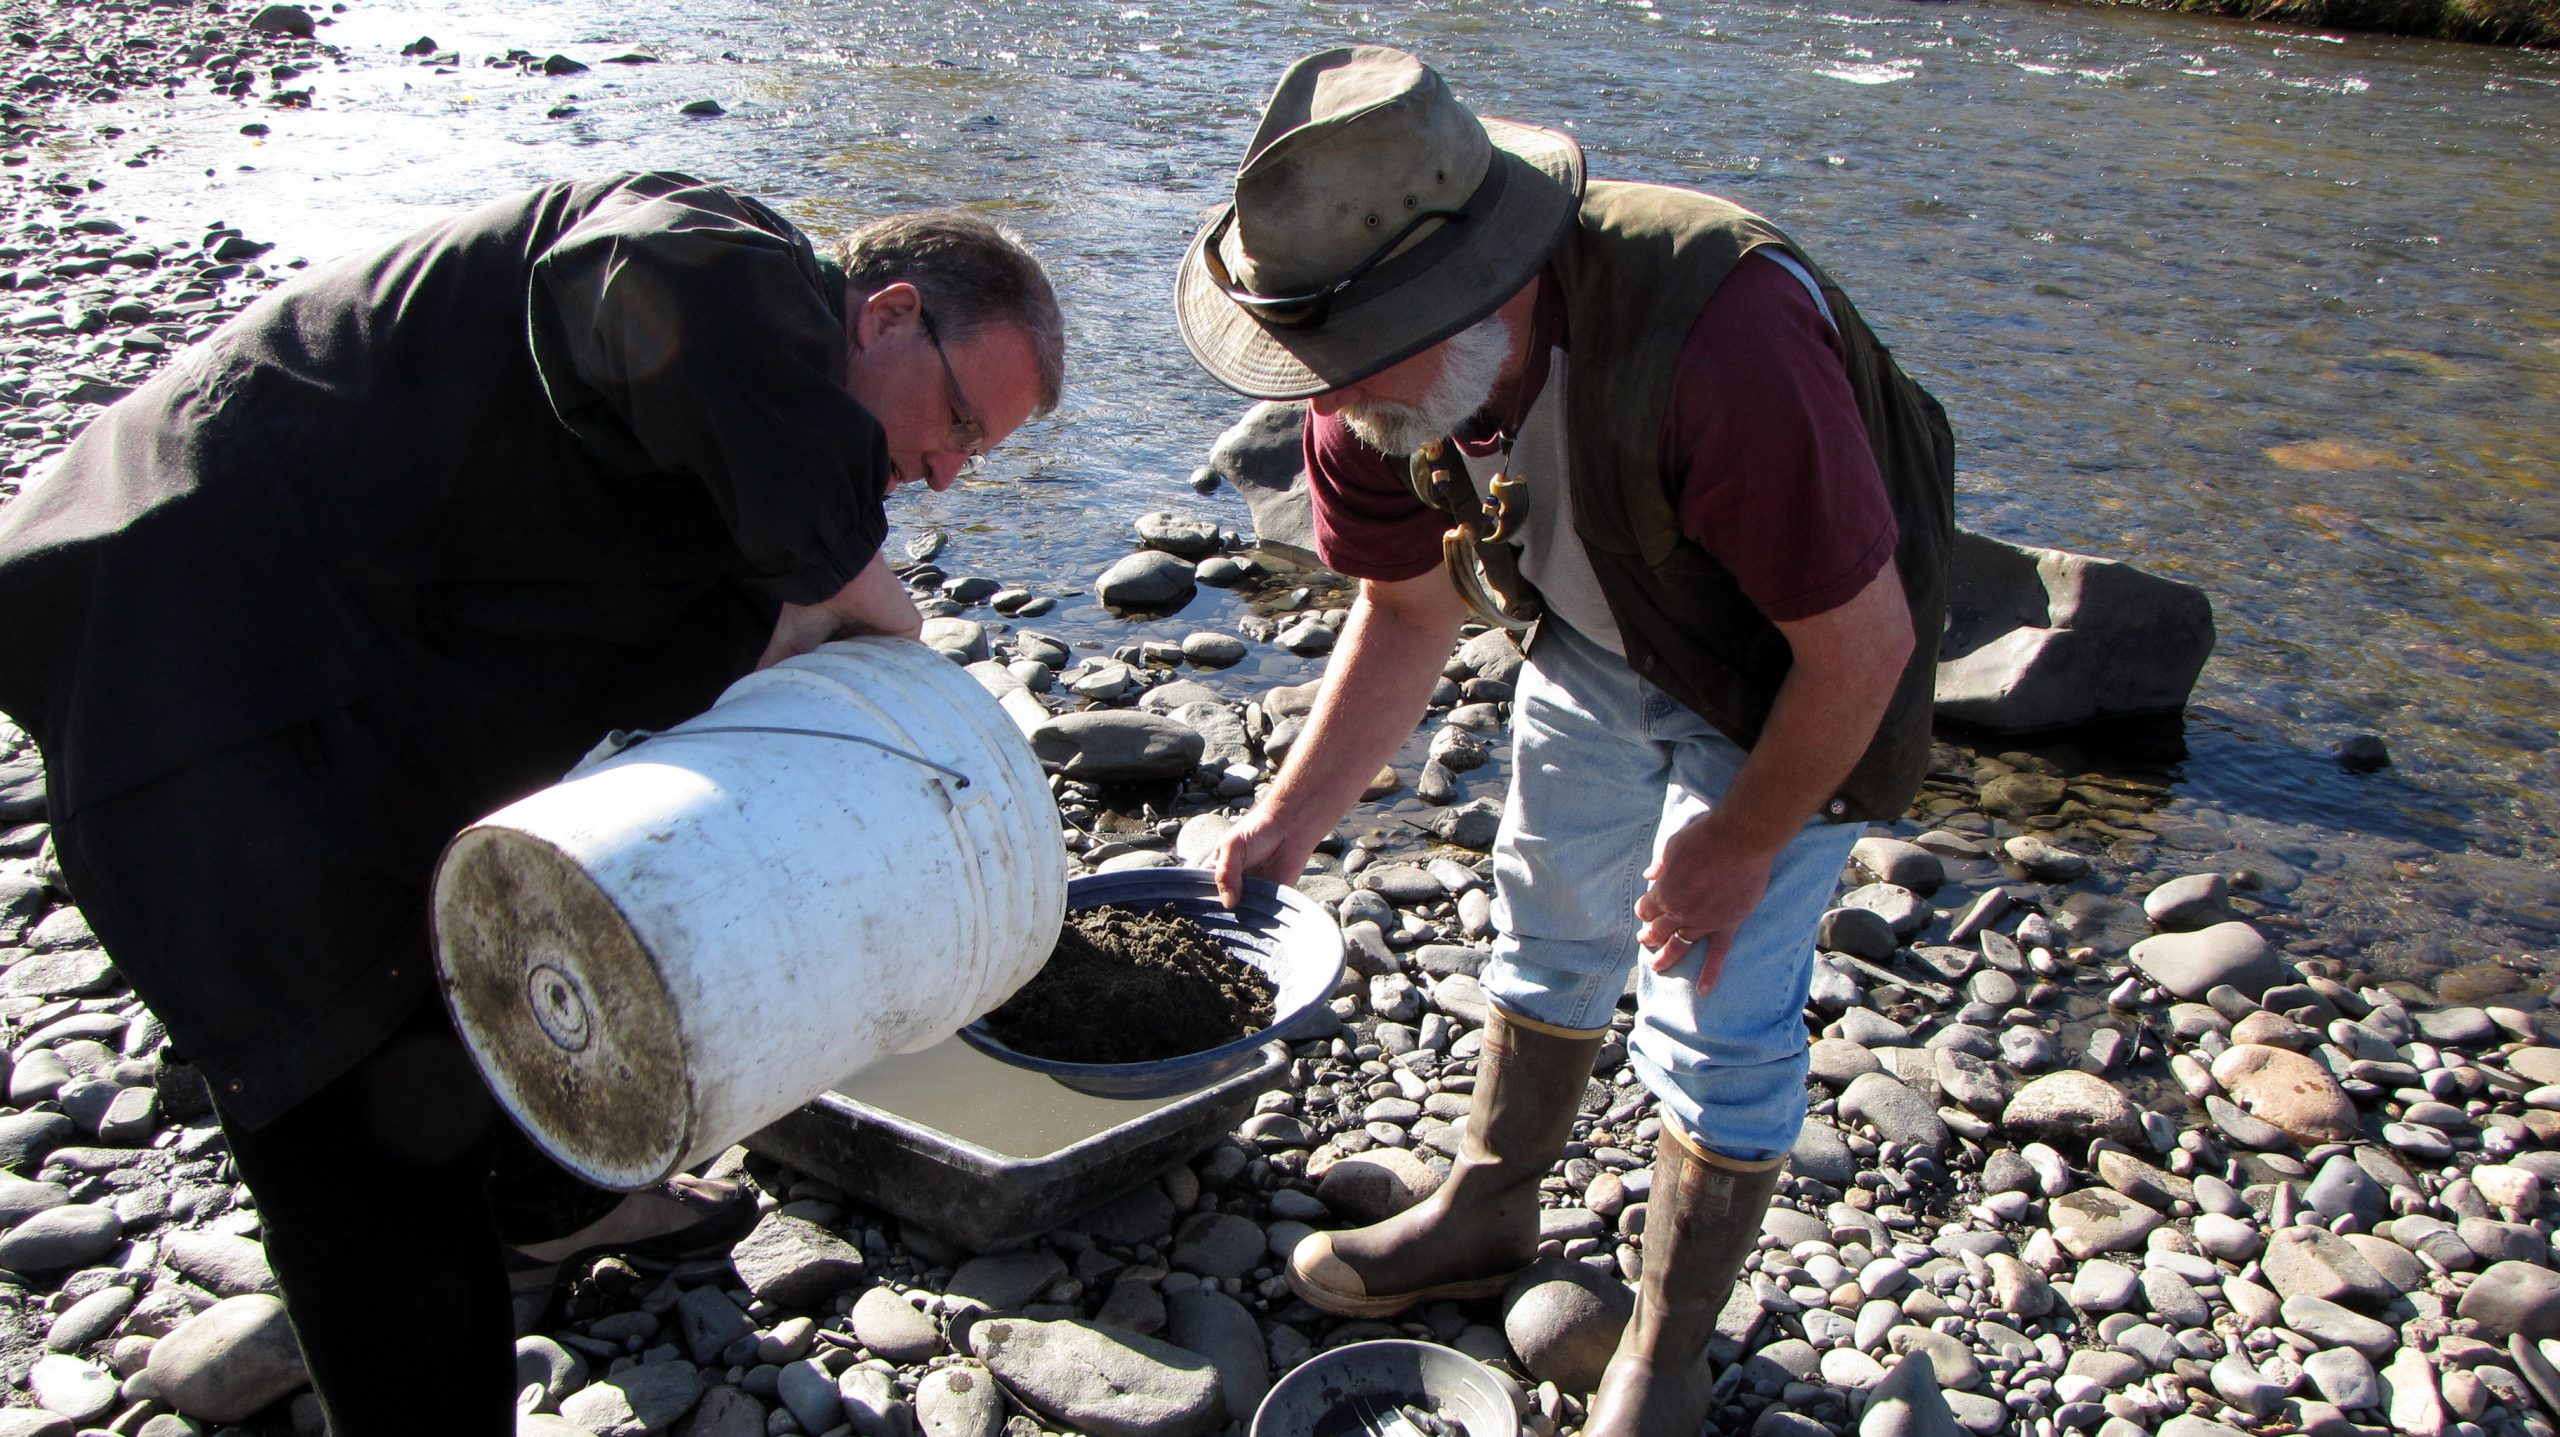 Charlie and guide panning for gold